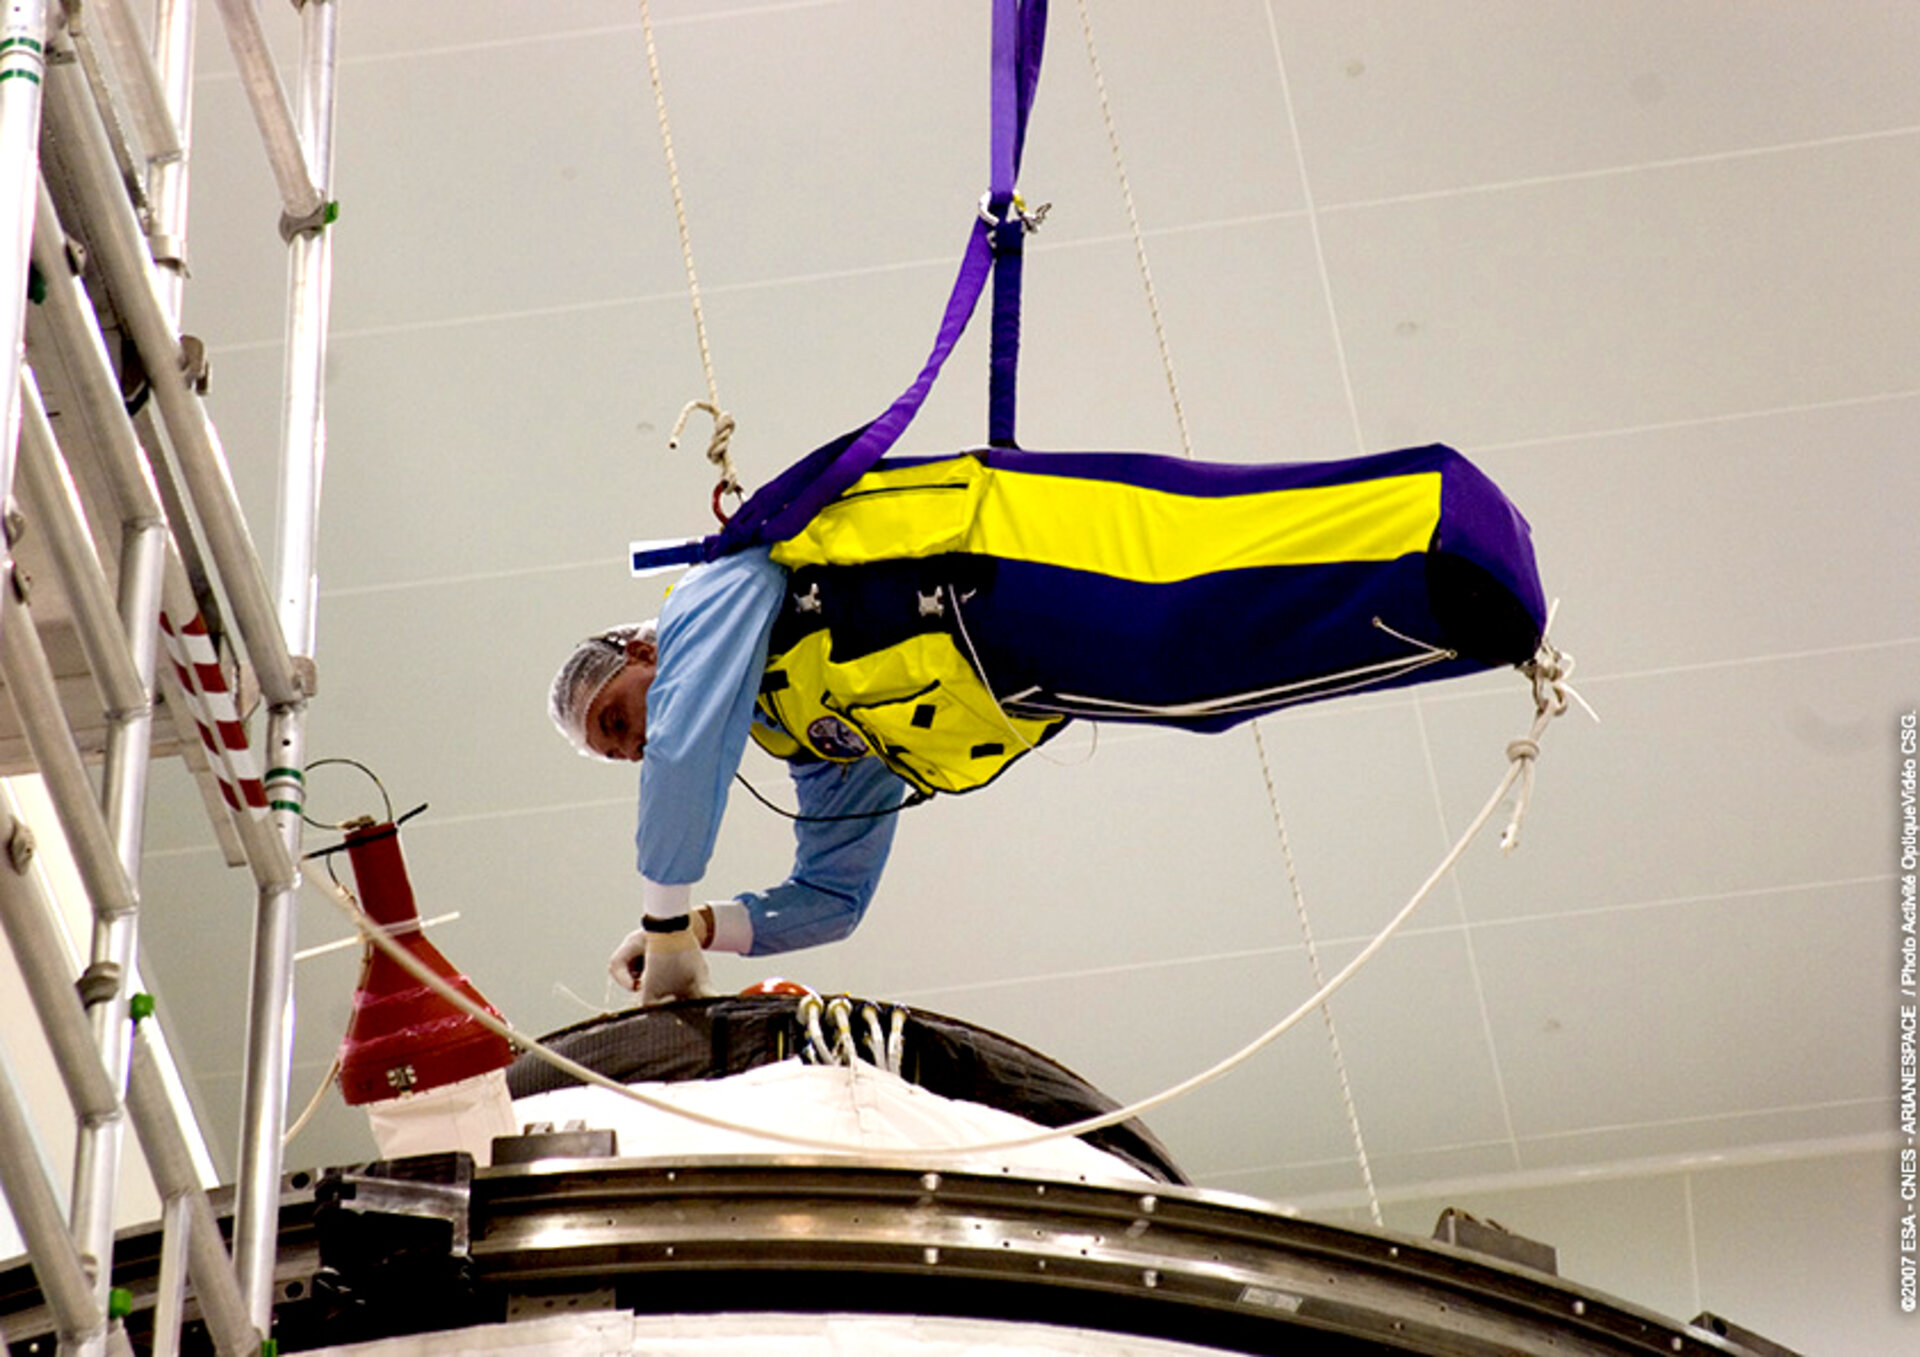 Flying operations to fix a component to the top of the Jules Verne spacecraft